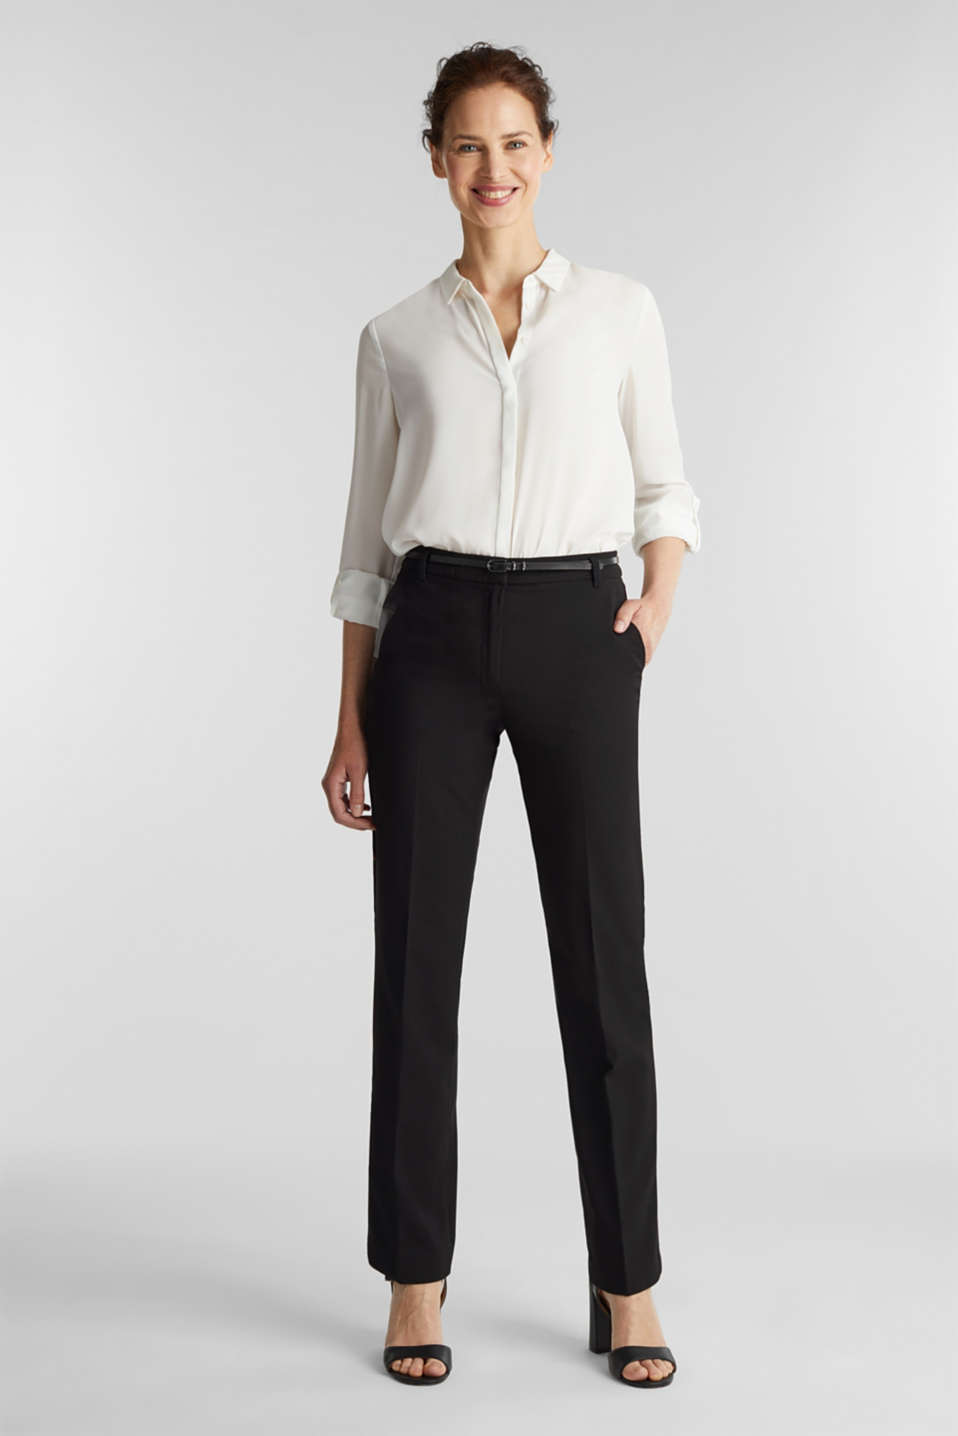 PURE BUSINESS mix + match trousers, BLACK, detail image number 1